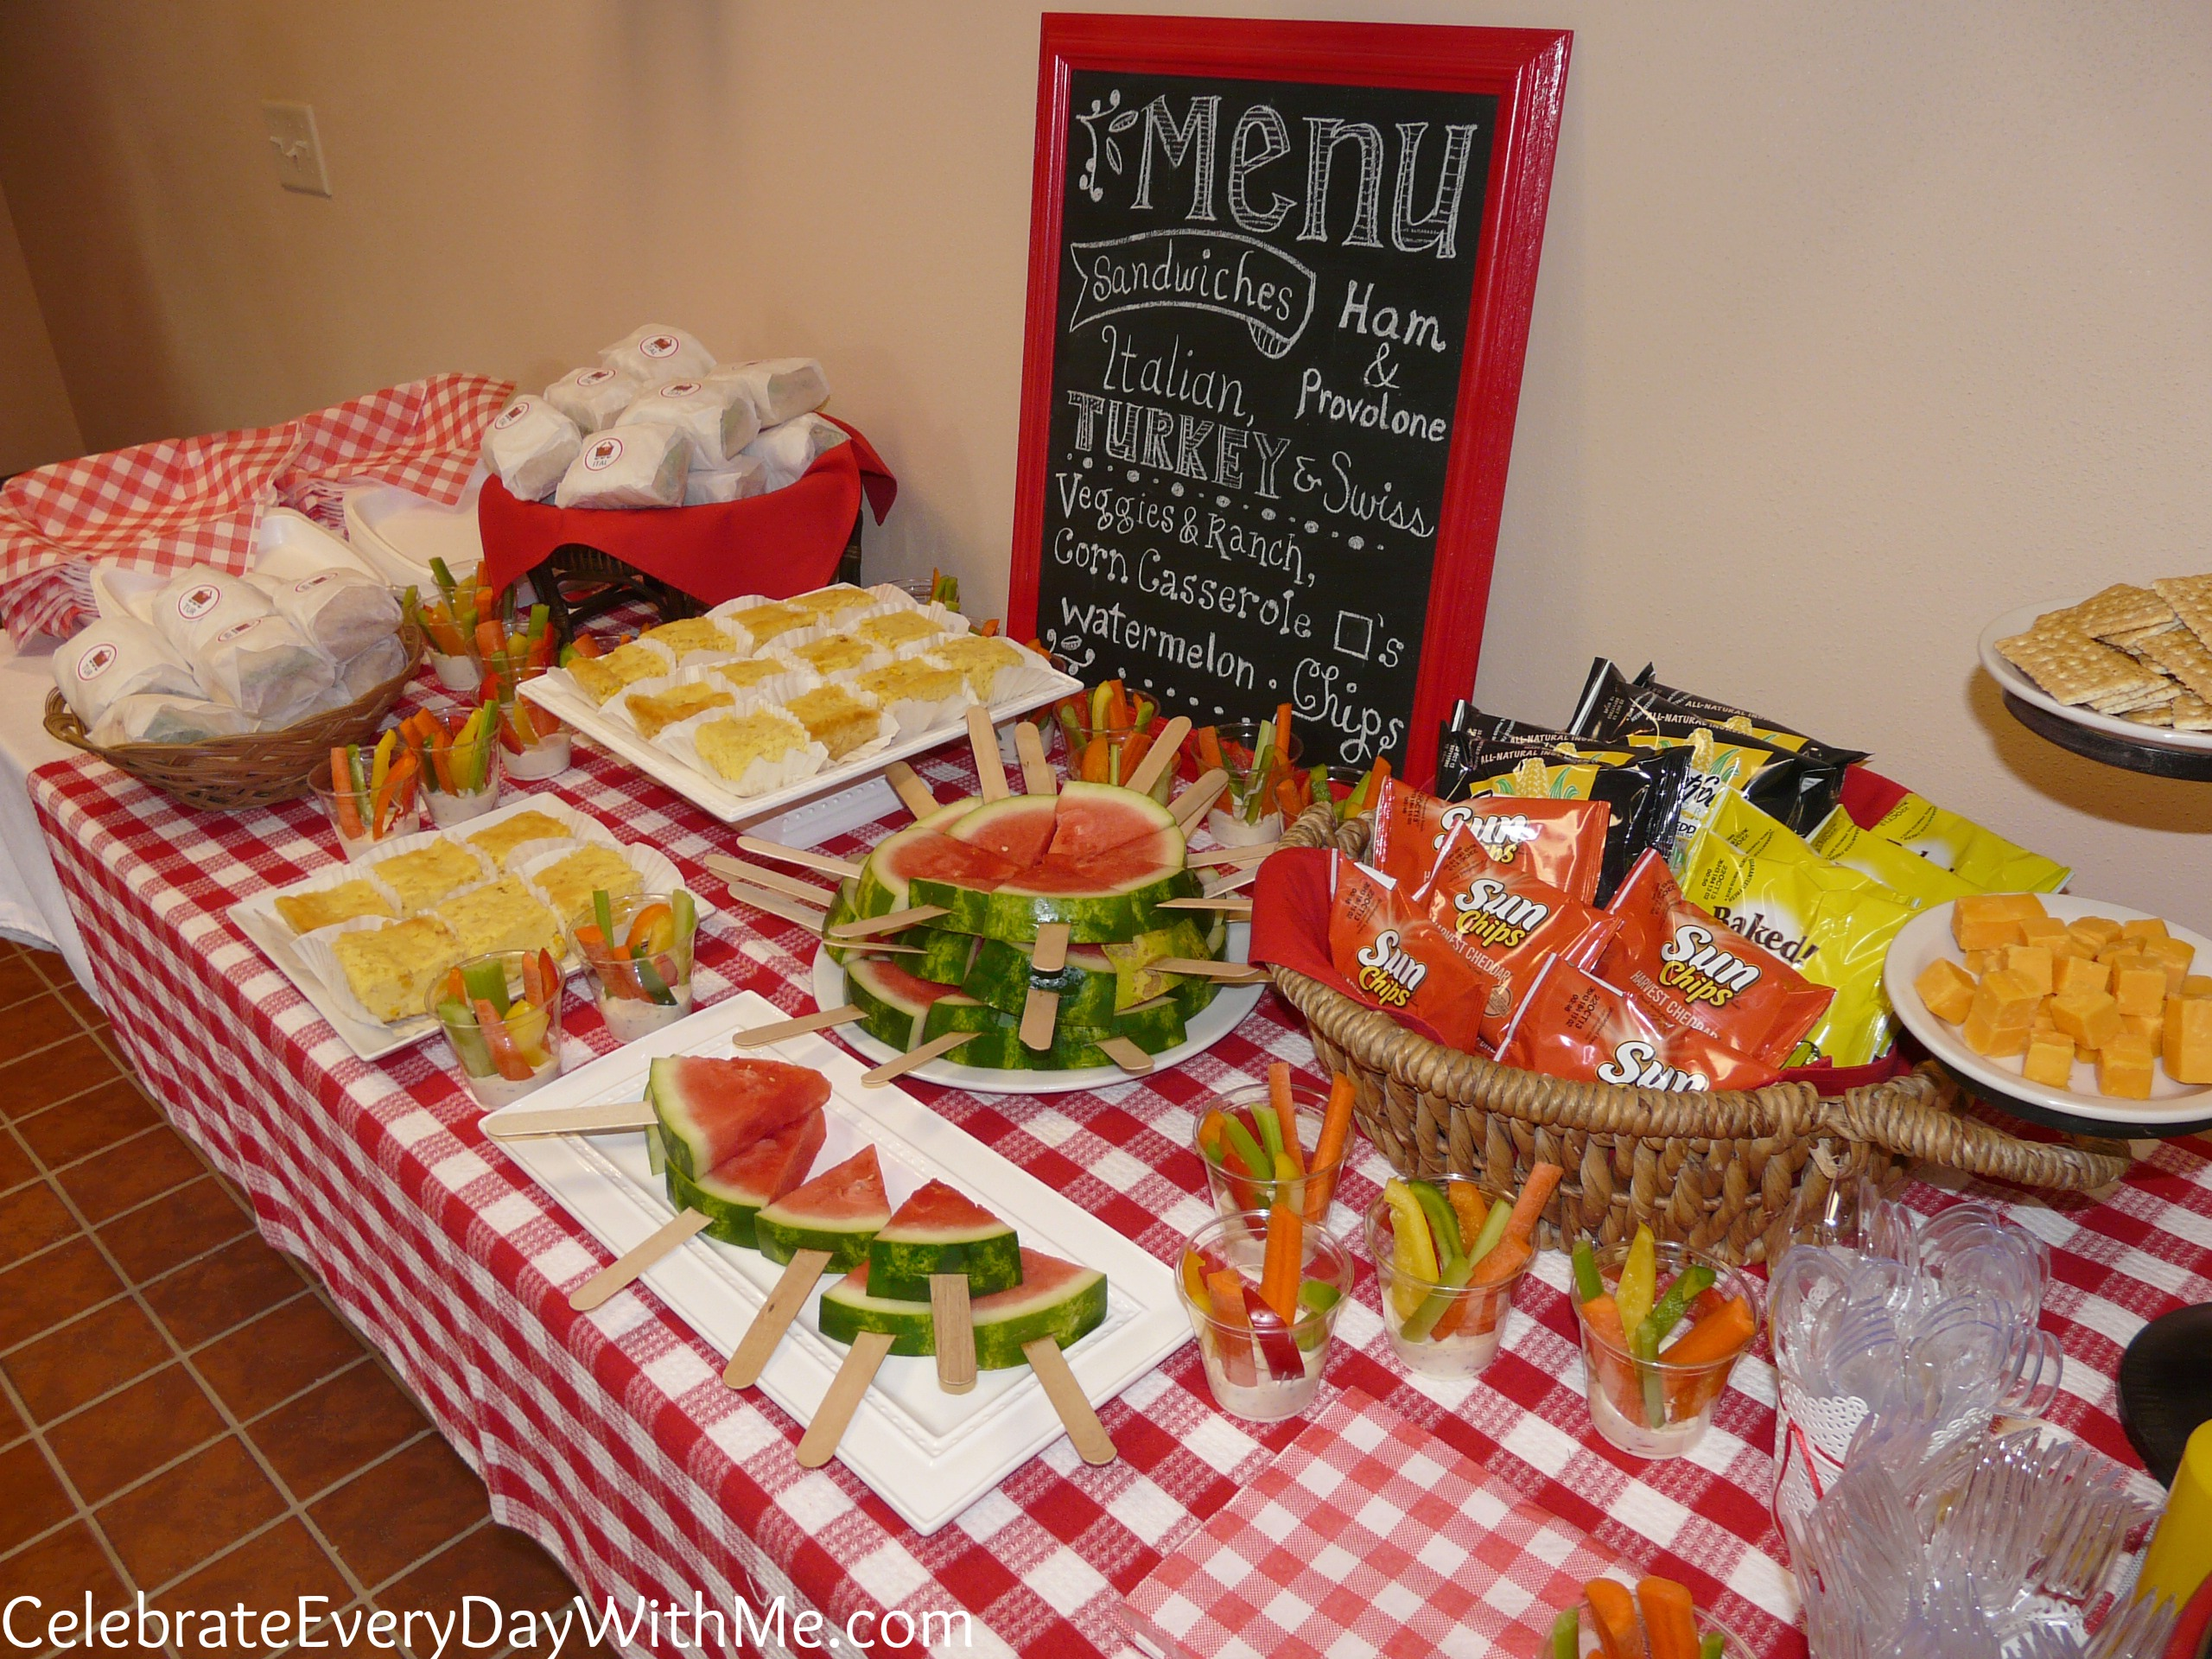 Kids party food table ideas images - Kids party food table ideas ...